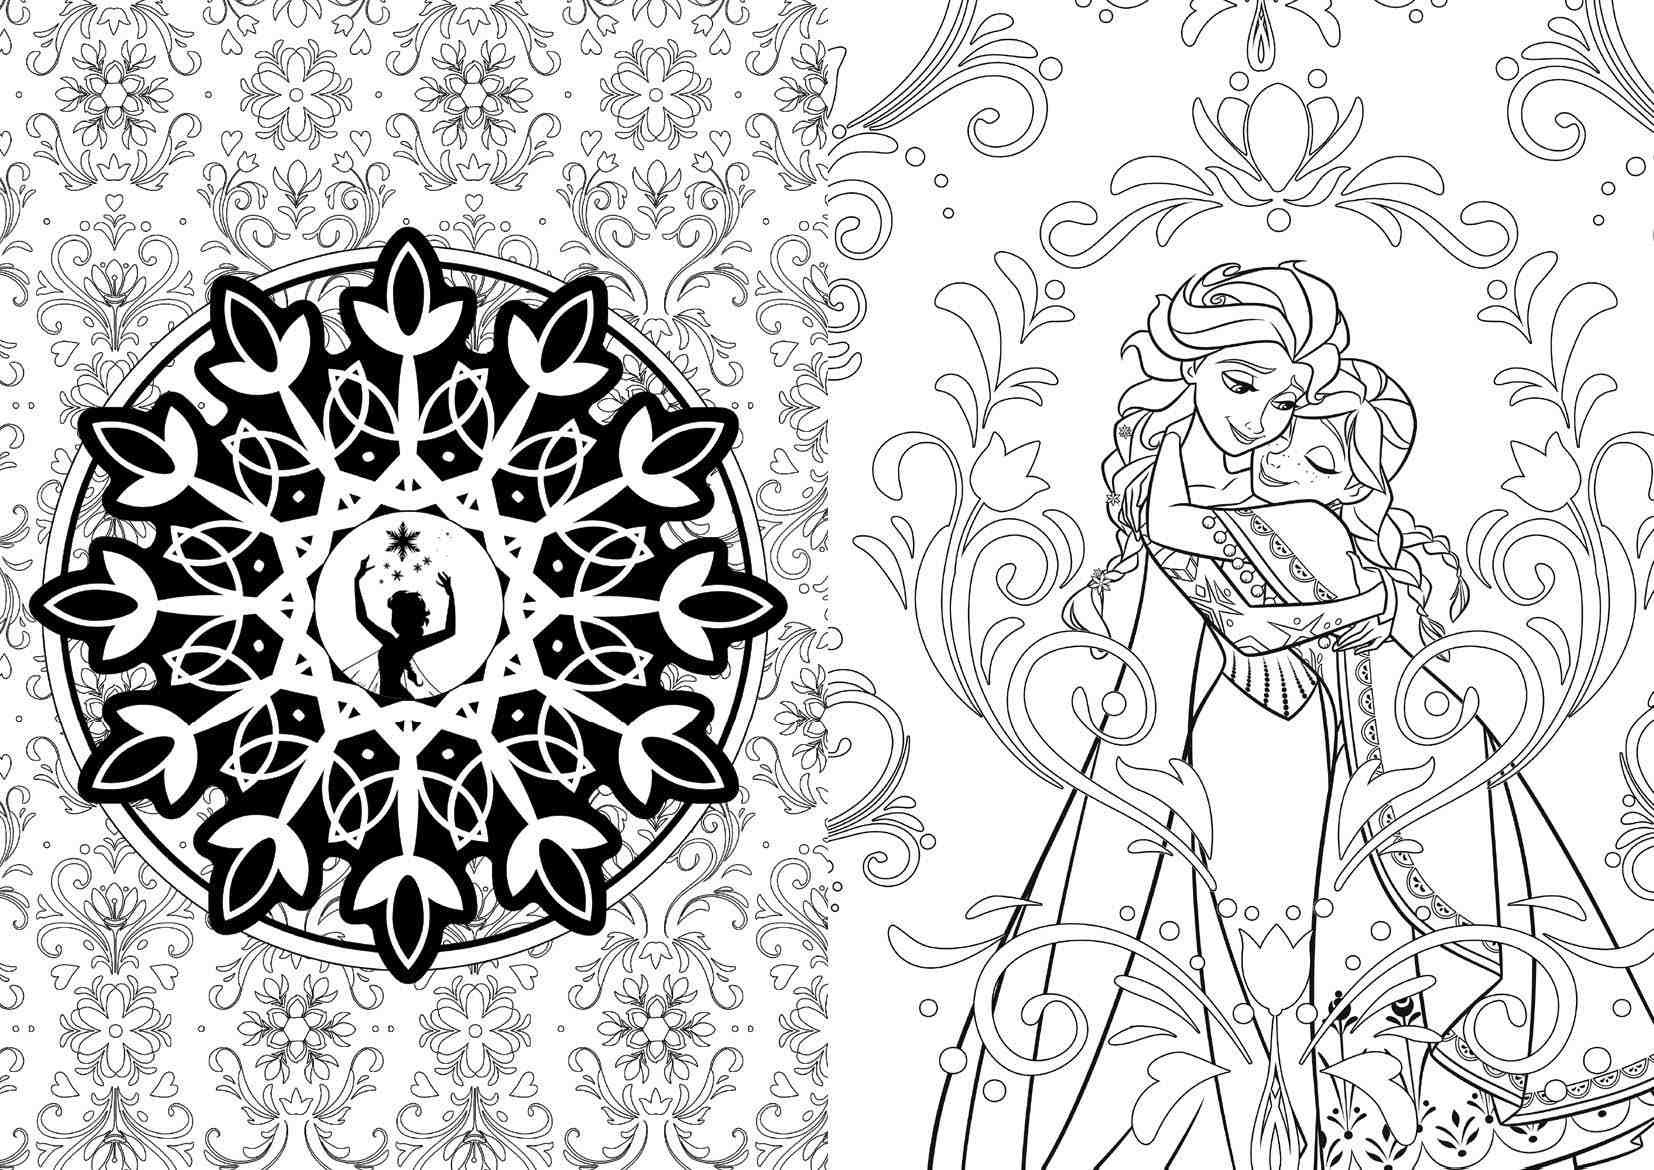 - Disney Offers Coloring Books For Adults